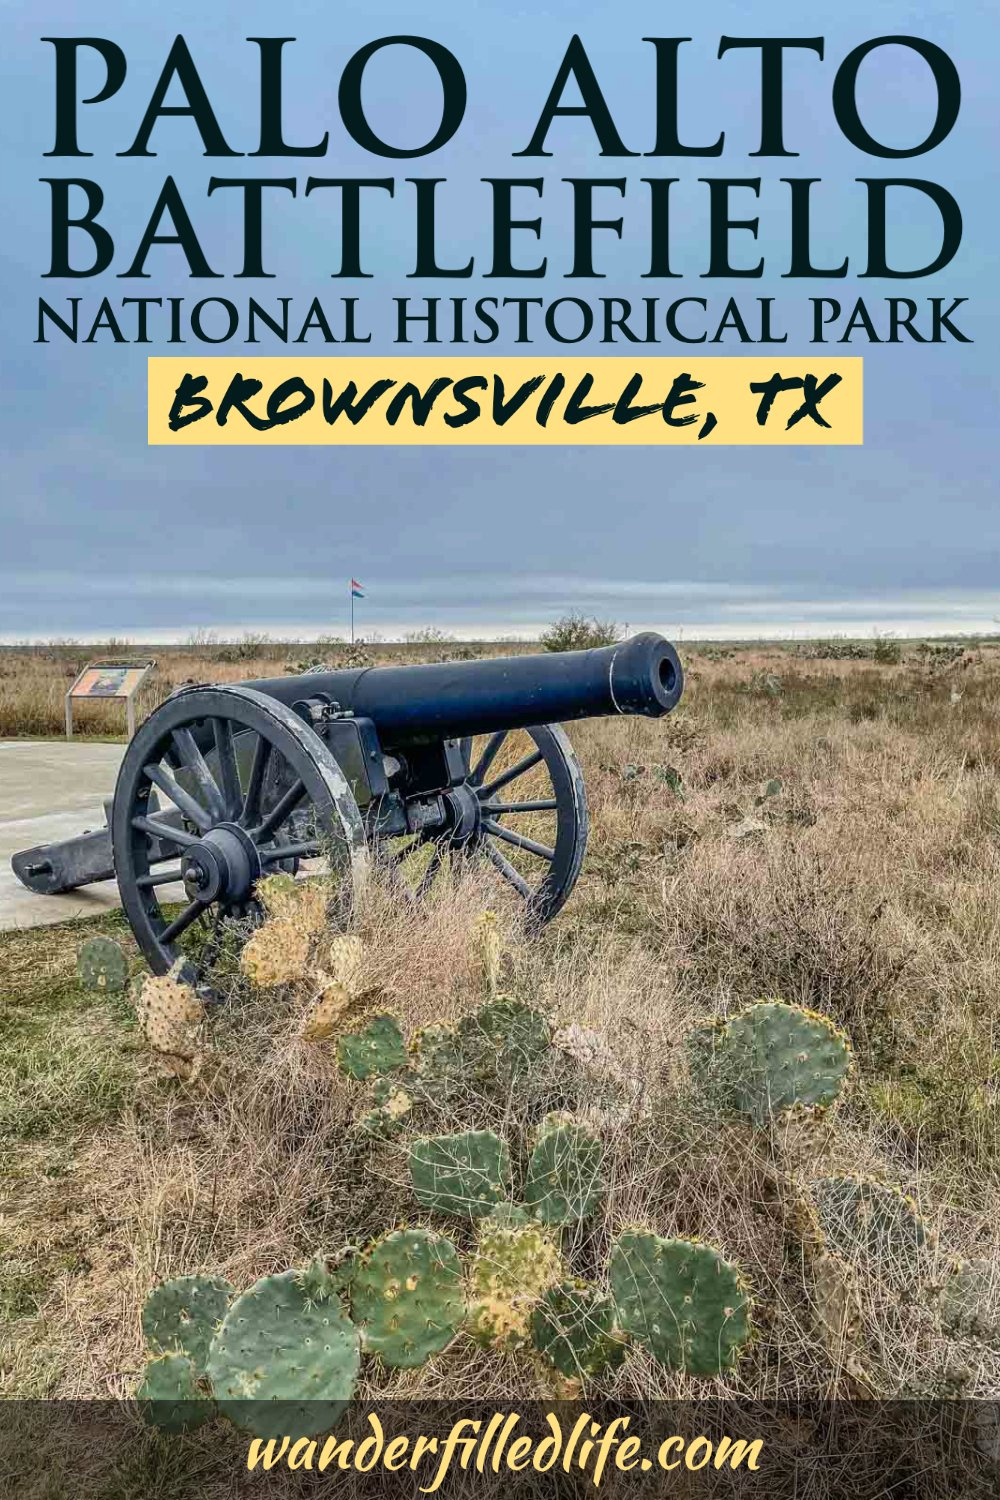 Palo Alto Battlefield National Historical Park offers an in-depth look at the first battles of the Mexican-American War and some unusual wildlife!